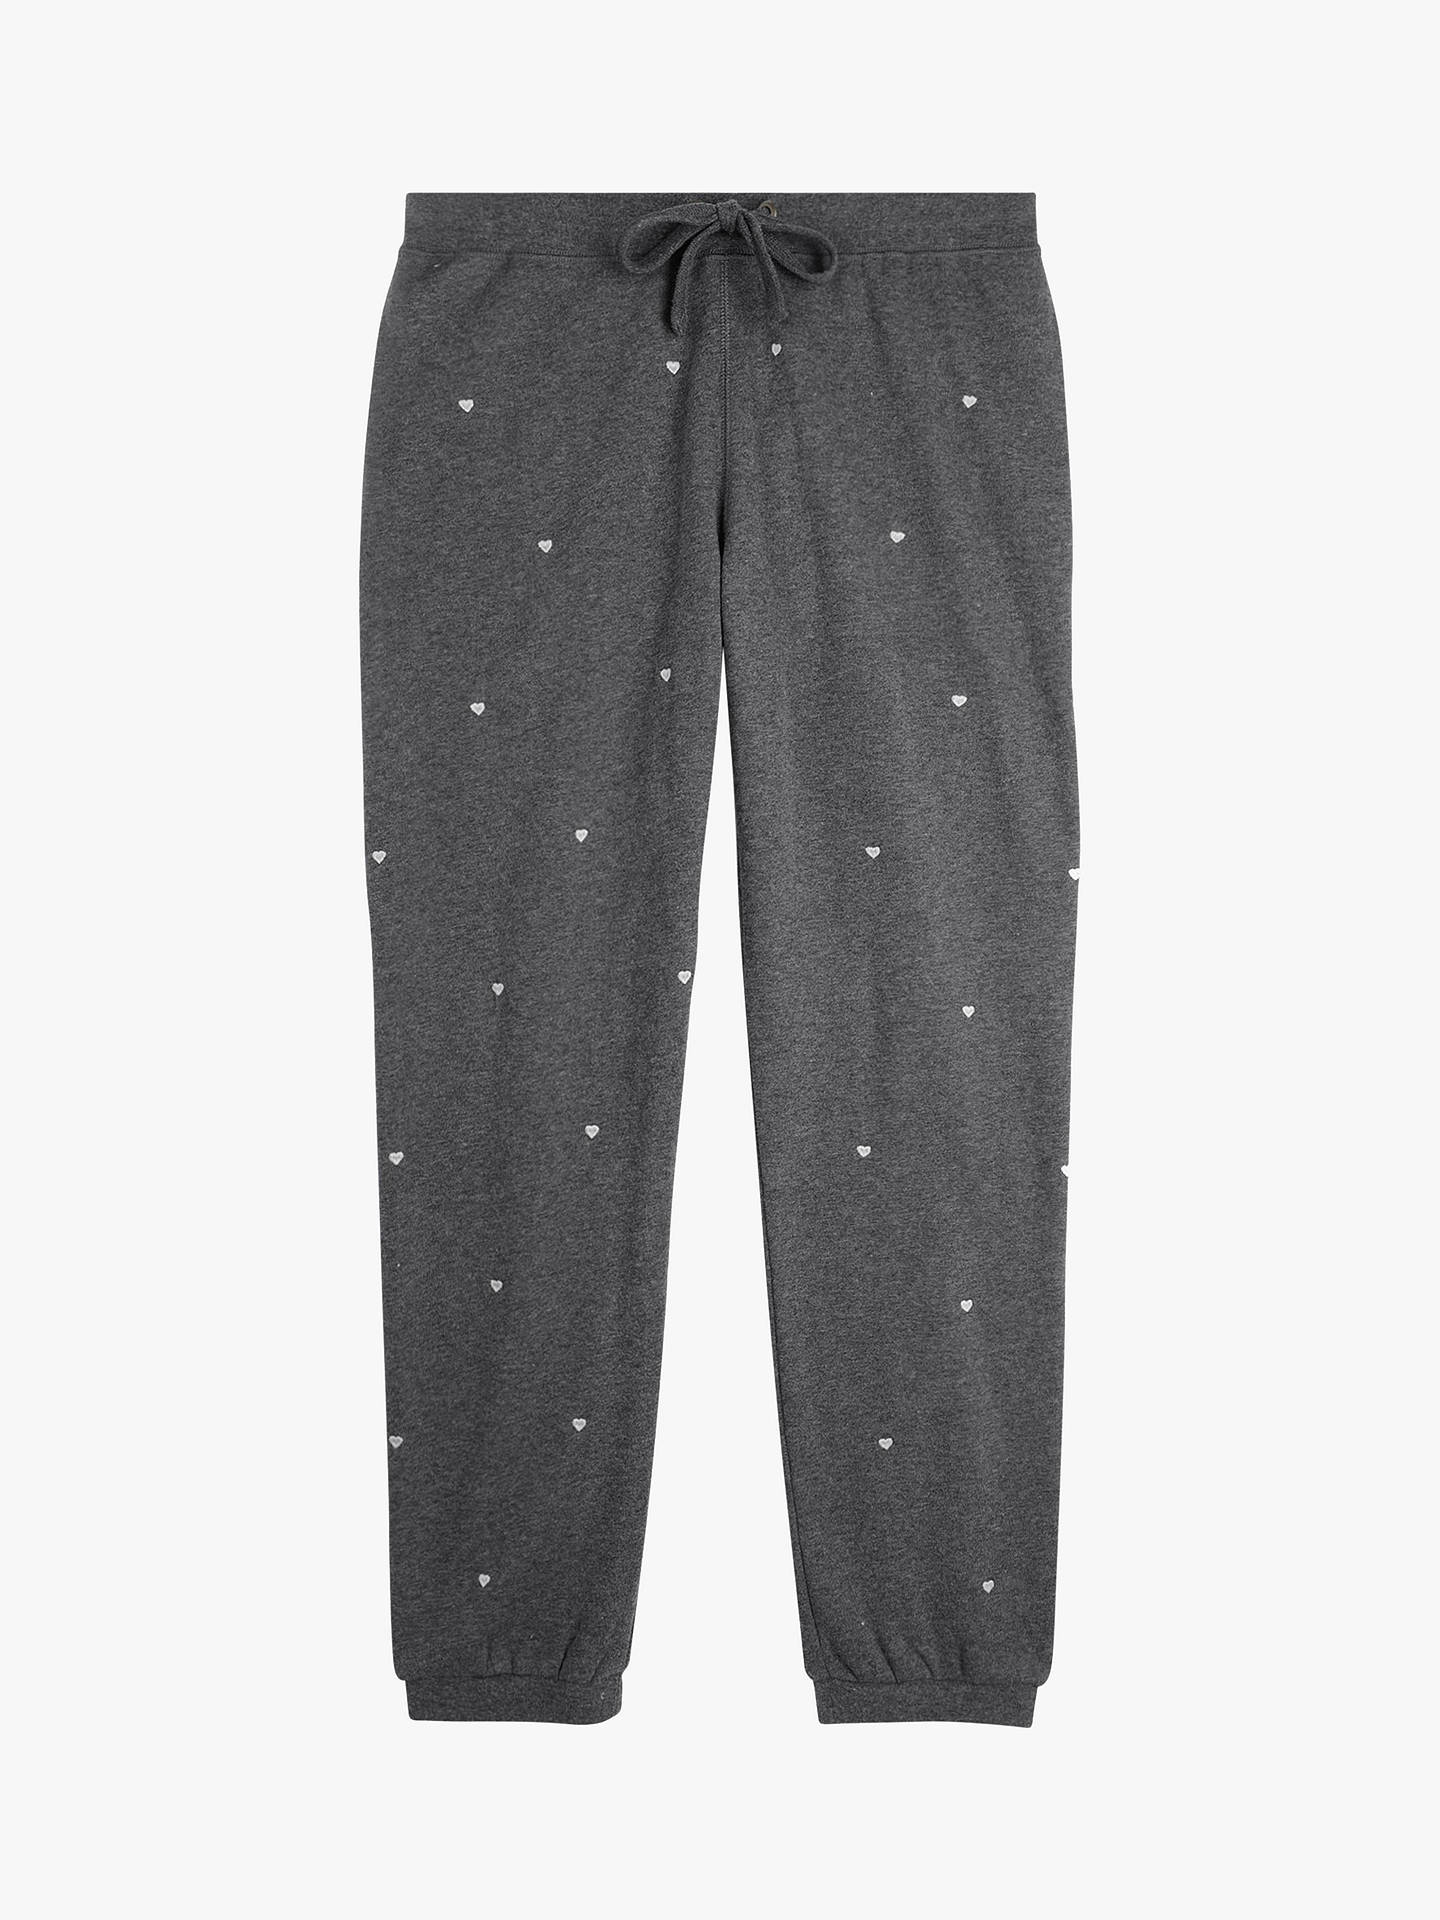 Buyhush Embroidered Heart Joggers, Charcoal Grey, L Online at johnlewis.com